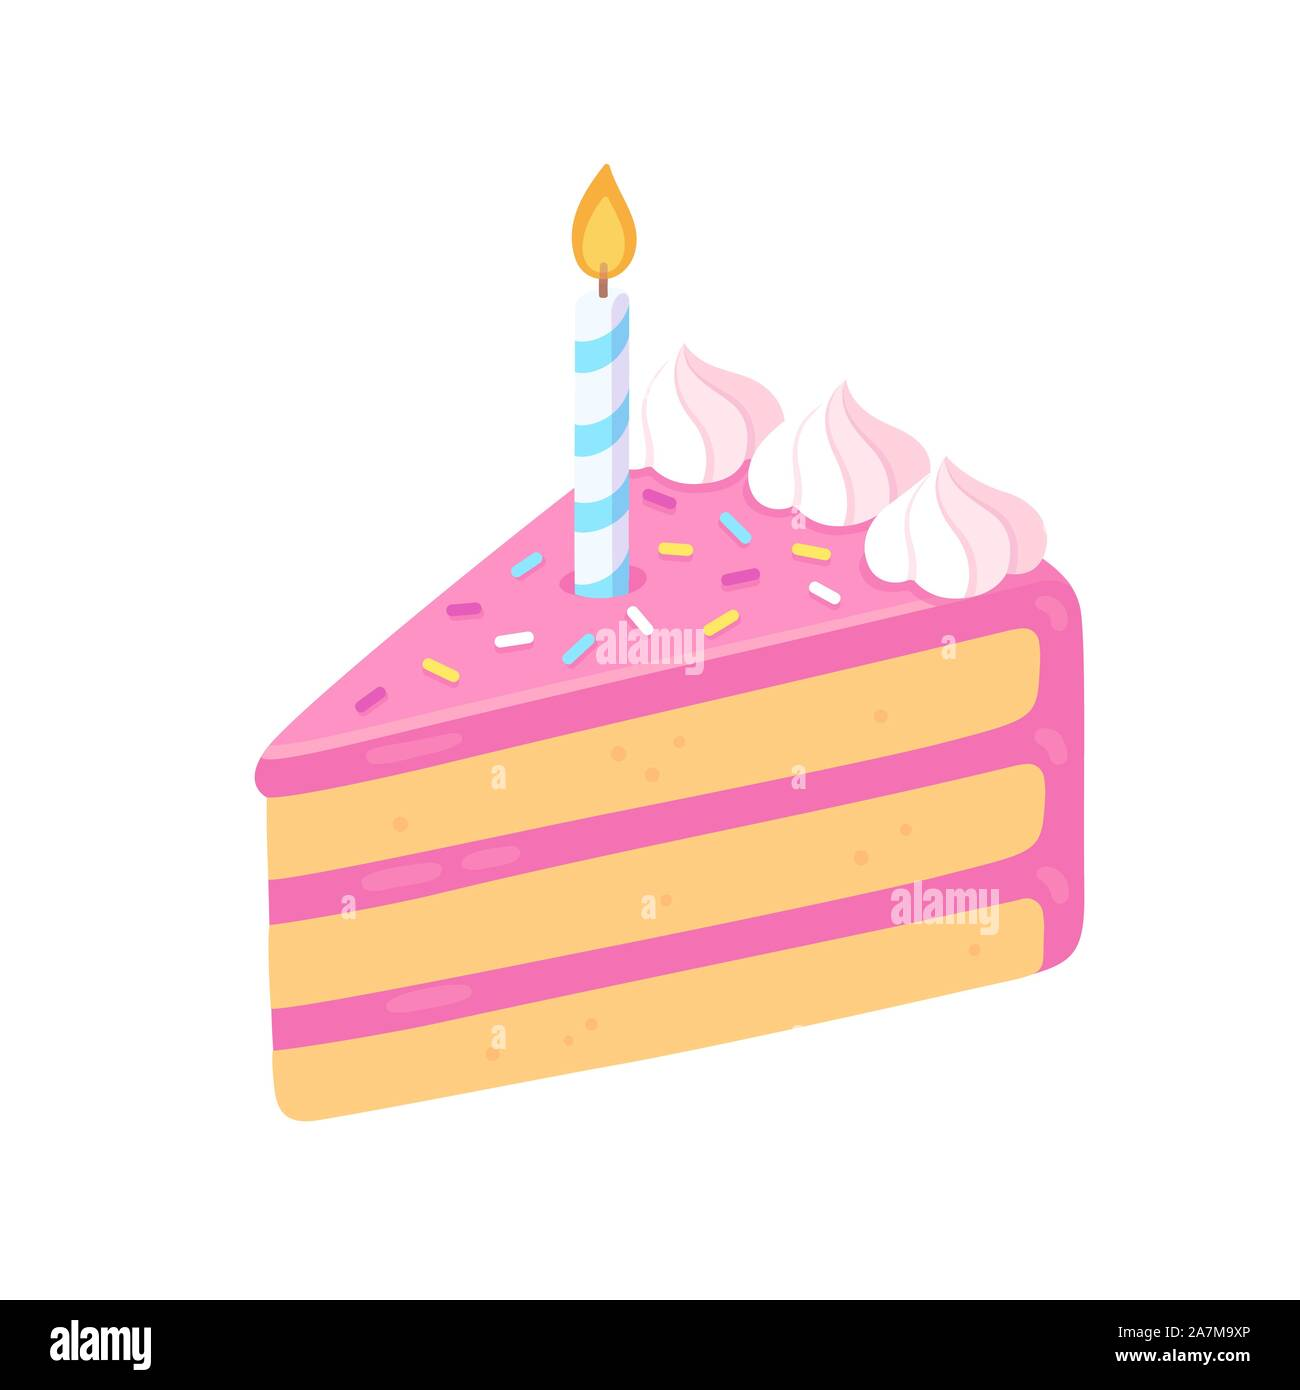 Slice Of Birthday Cake With Candle Pink Frosting And Sprinkles Happy Birthday Greeting Card Design Element Cartoon Style Isolated Vector Clip Art I Stock Vector Image Art Alamy